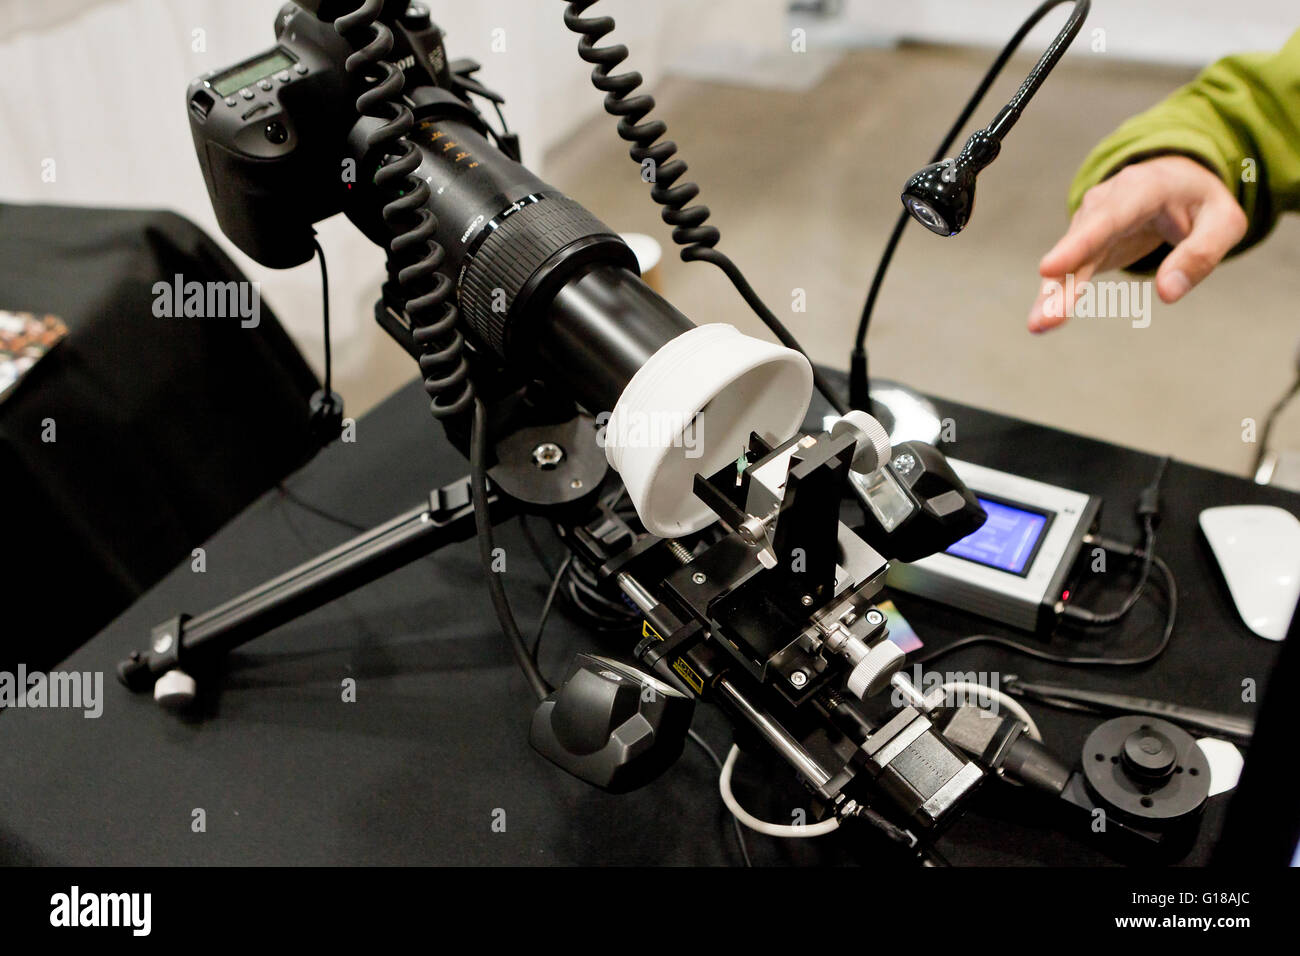 Macro photography setup - USA - Stock Image